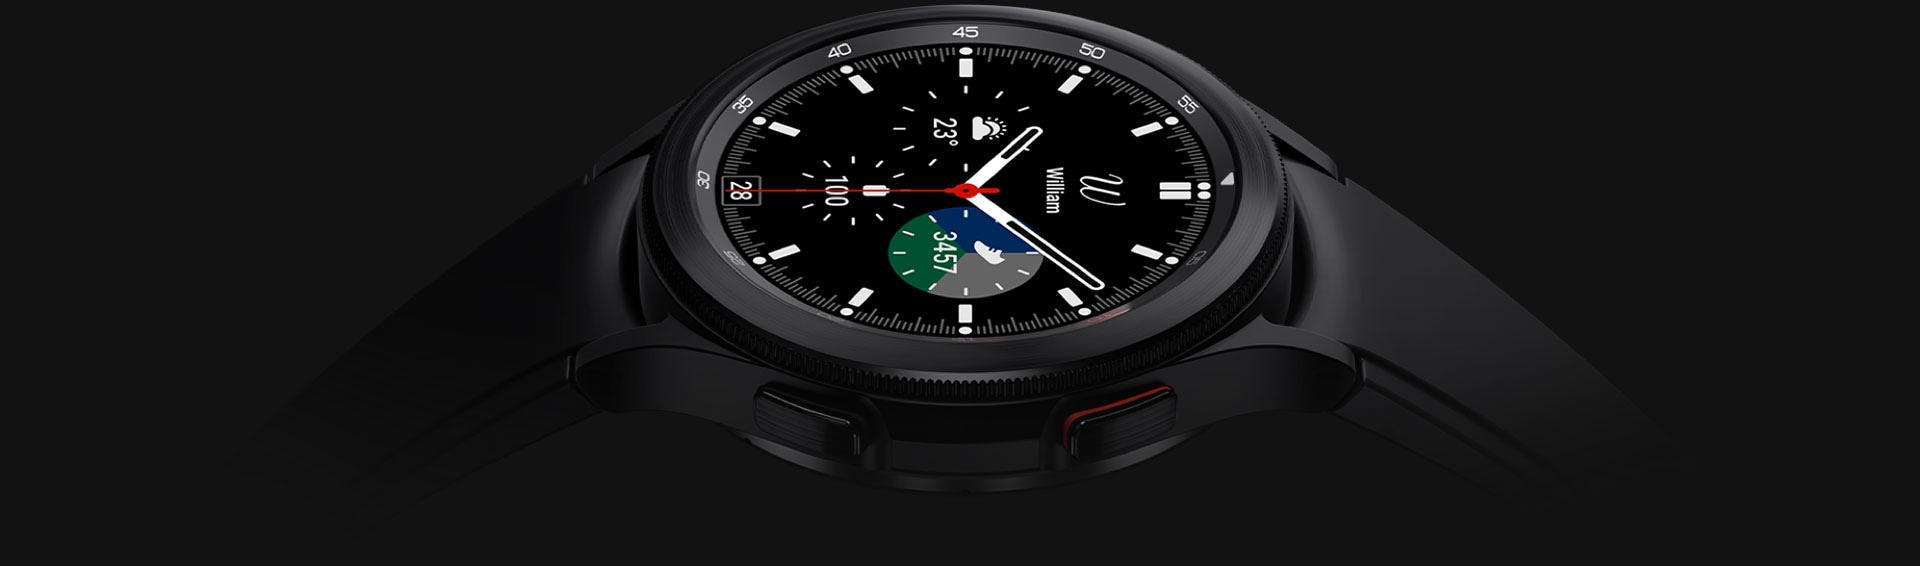 The watch face of a black Galaxy Watch4 Classic is facing up and showing the time.